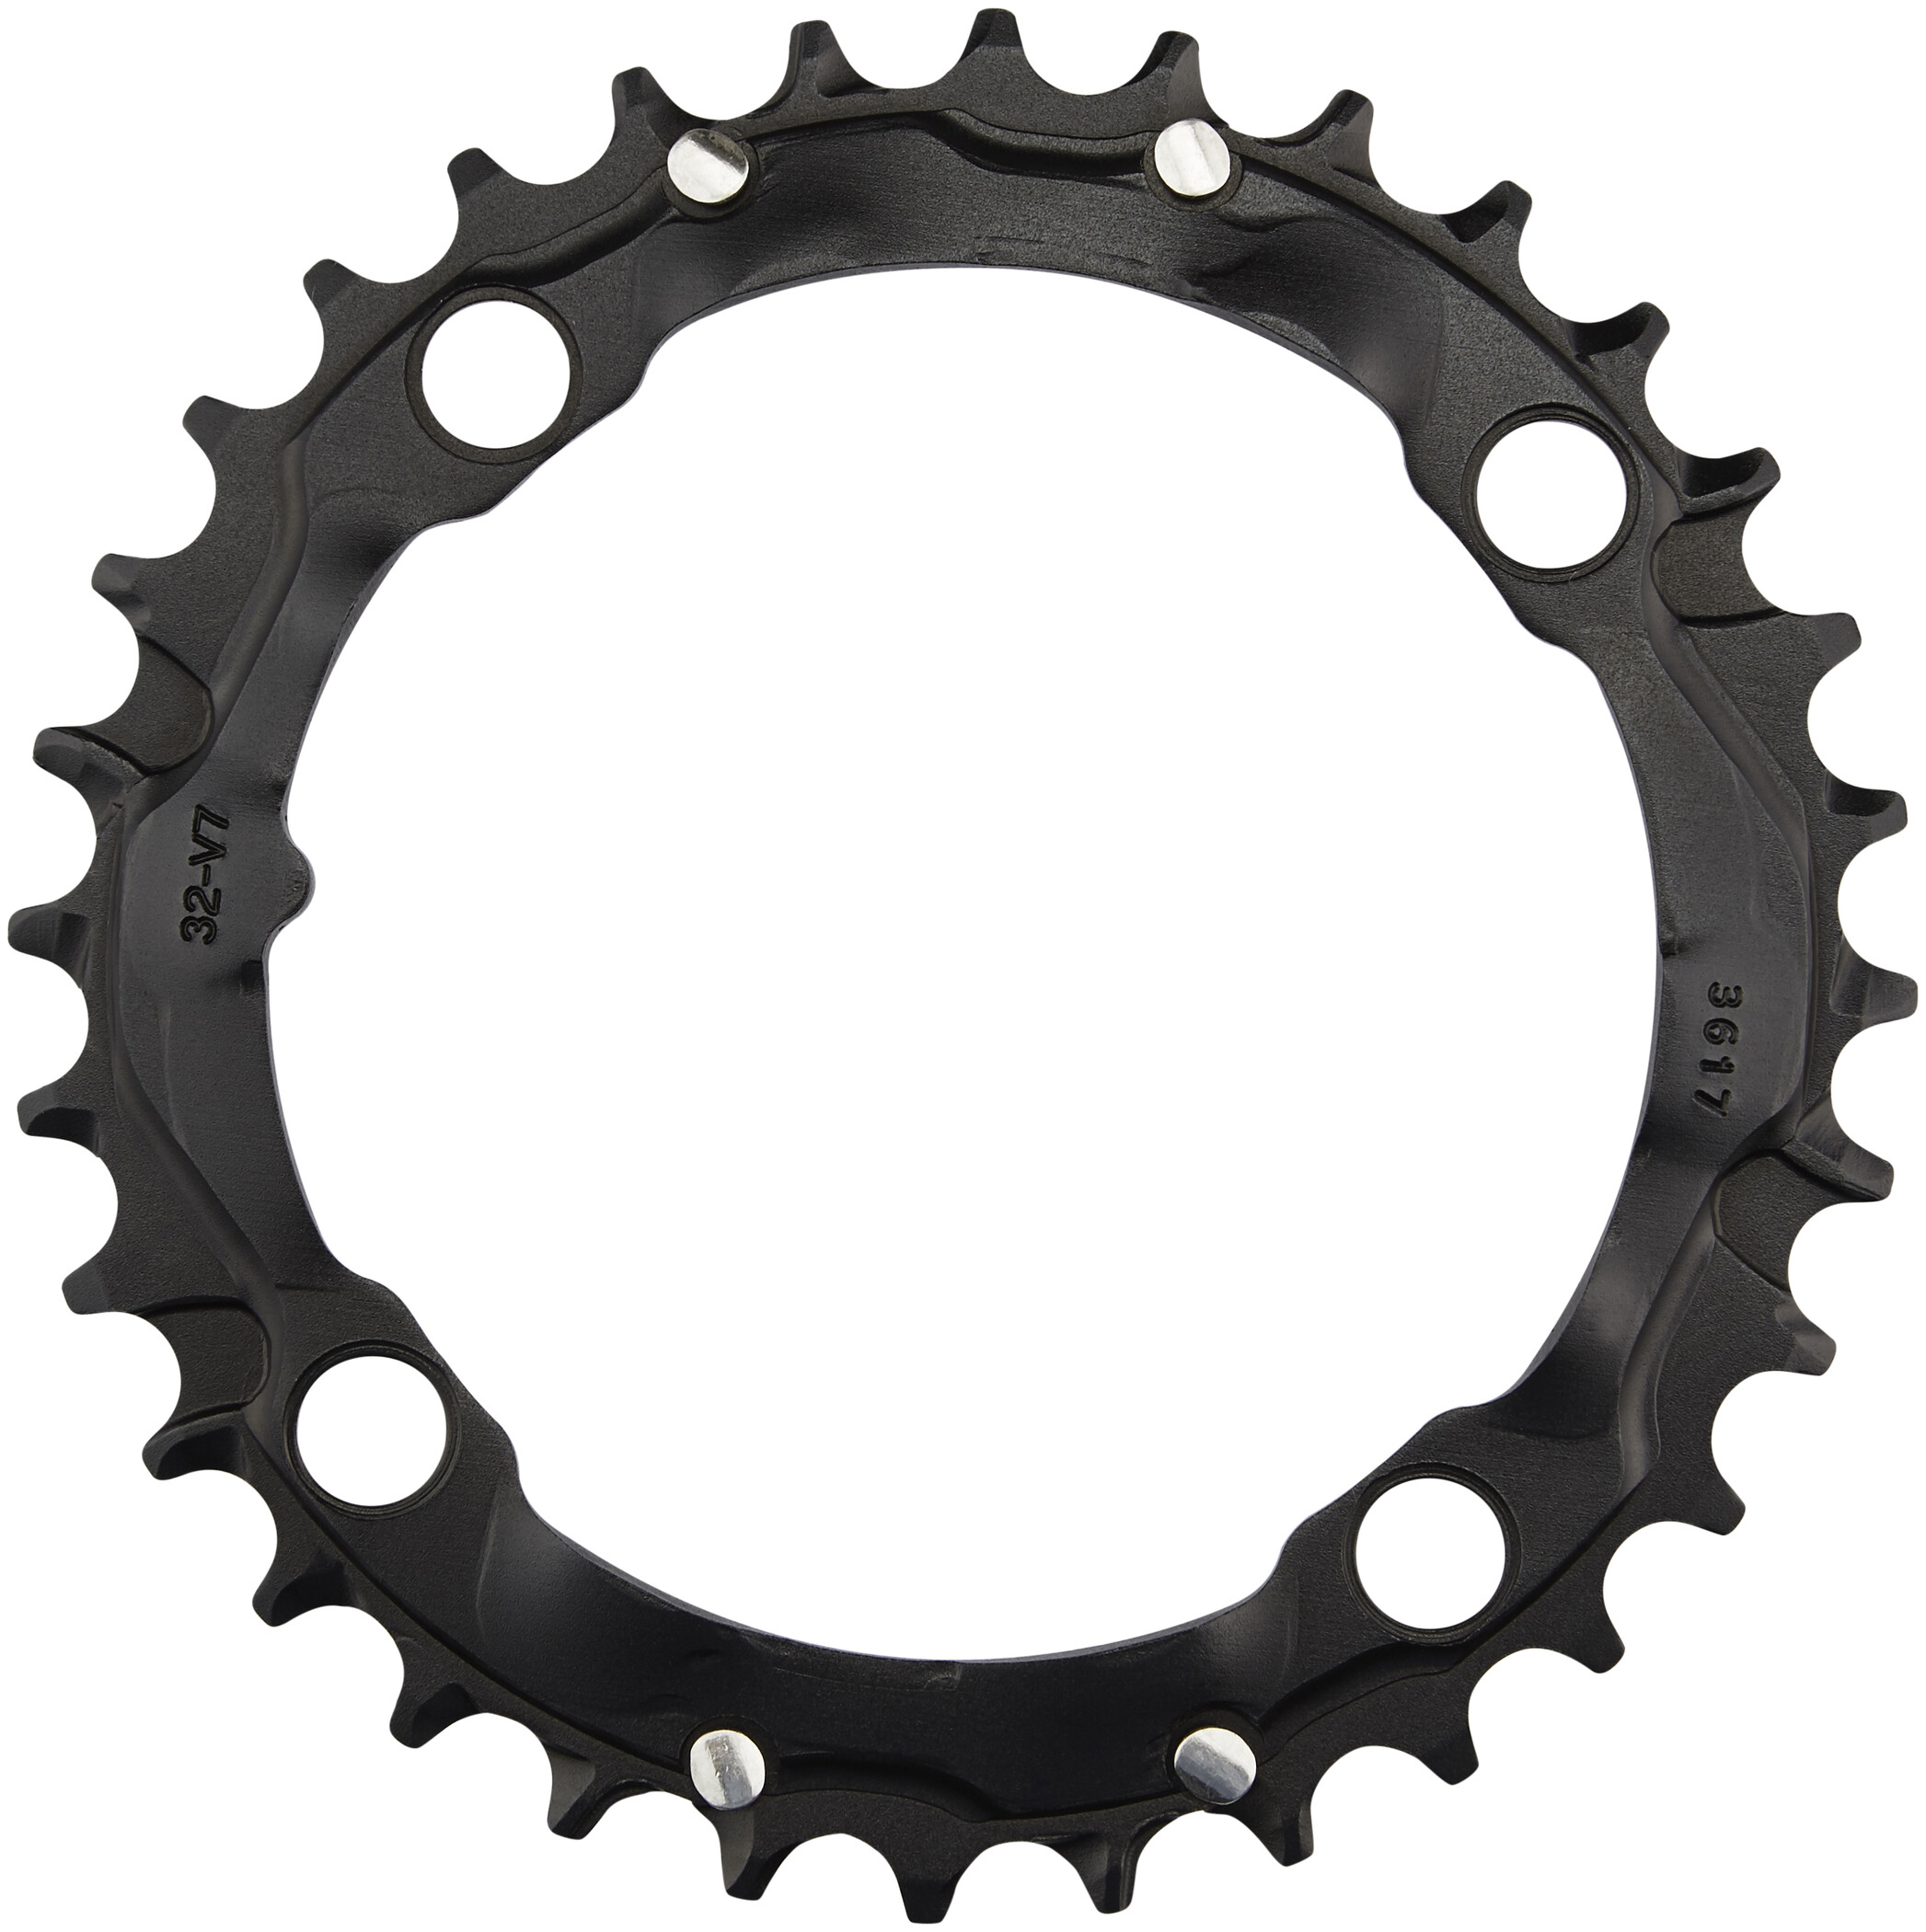 Truvativ MTB Klinge 104 mm aluminium, black (2019) | chainrings_component